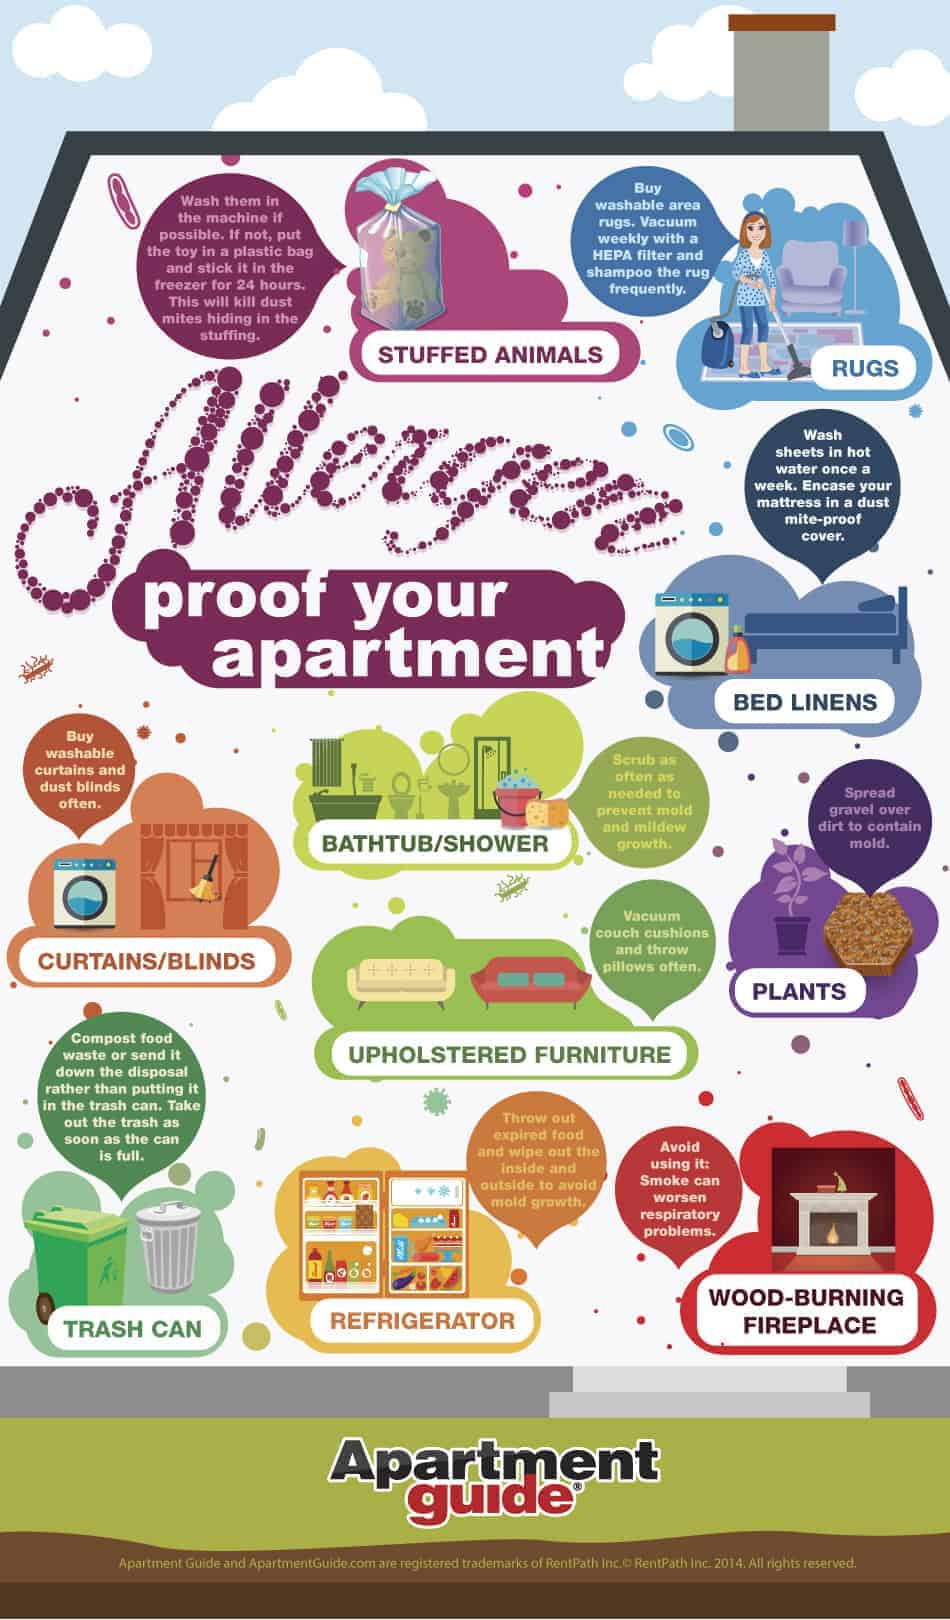 Get rid of allergens in your apartment